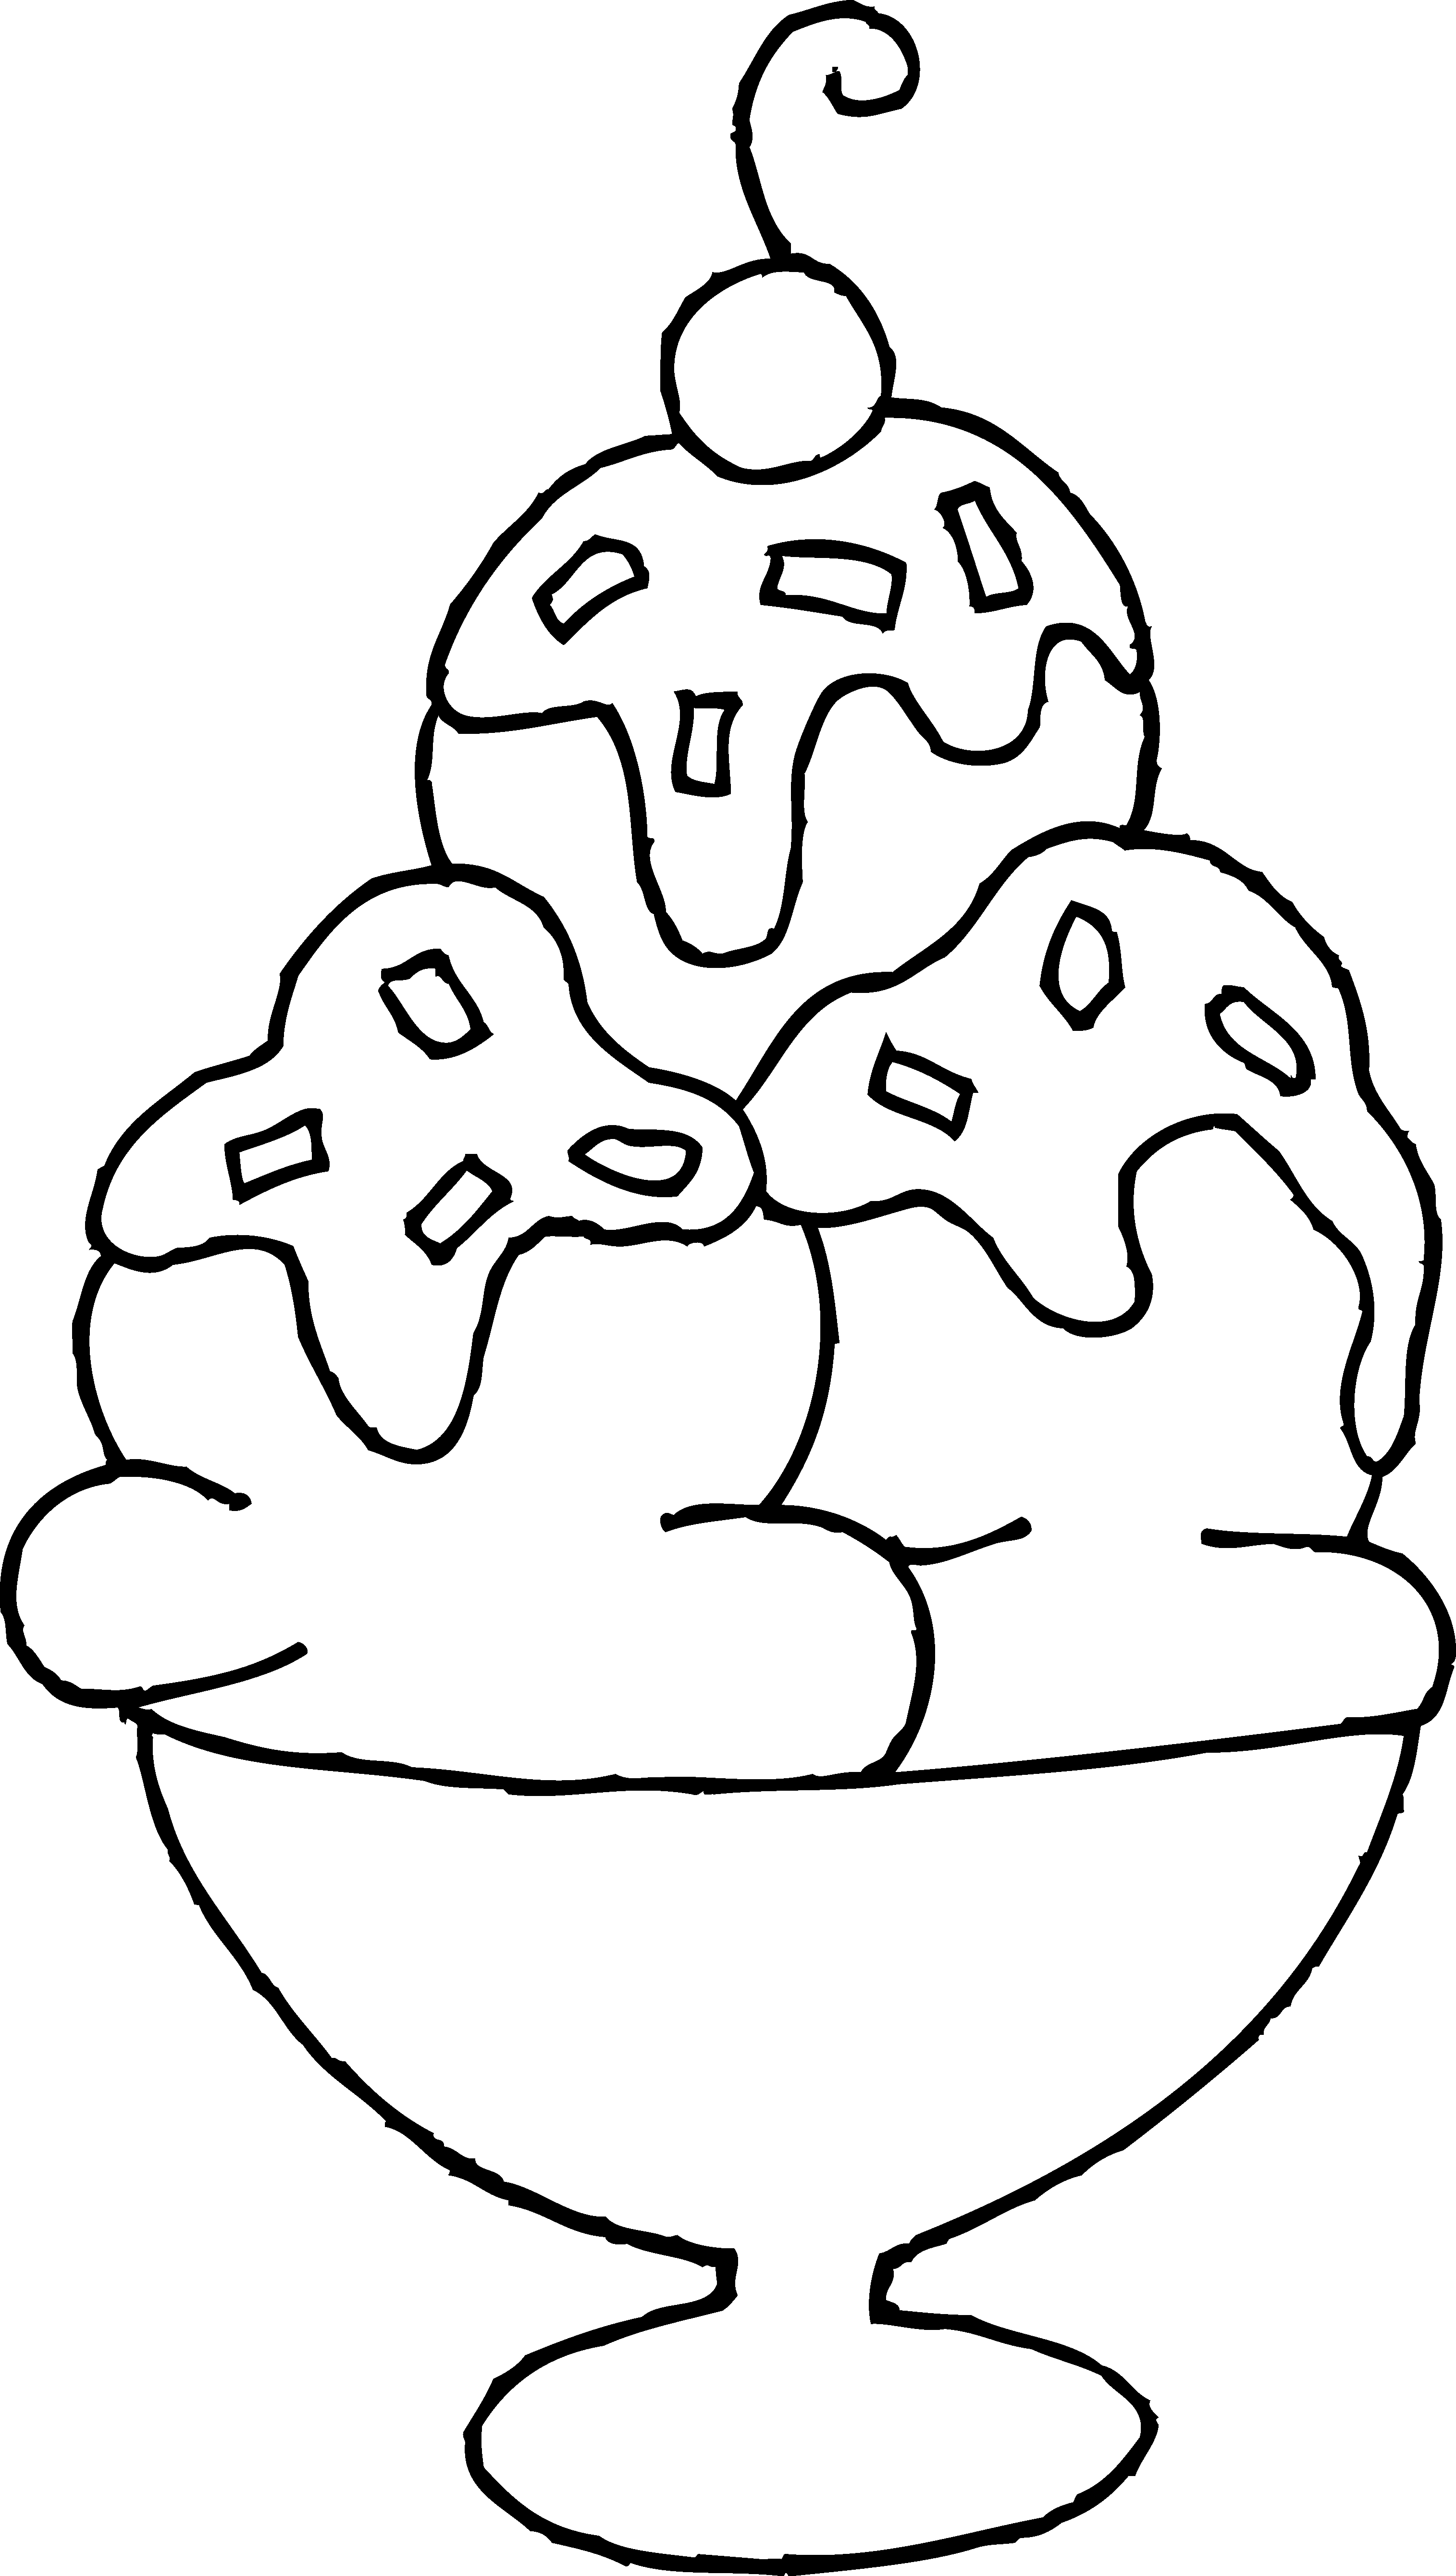 Ice Cream Sundae Printable Coloring Pages